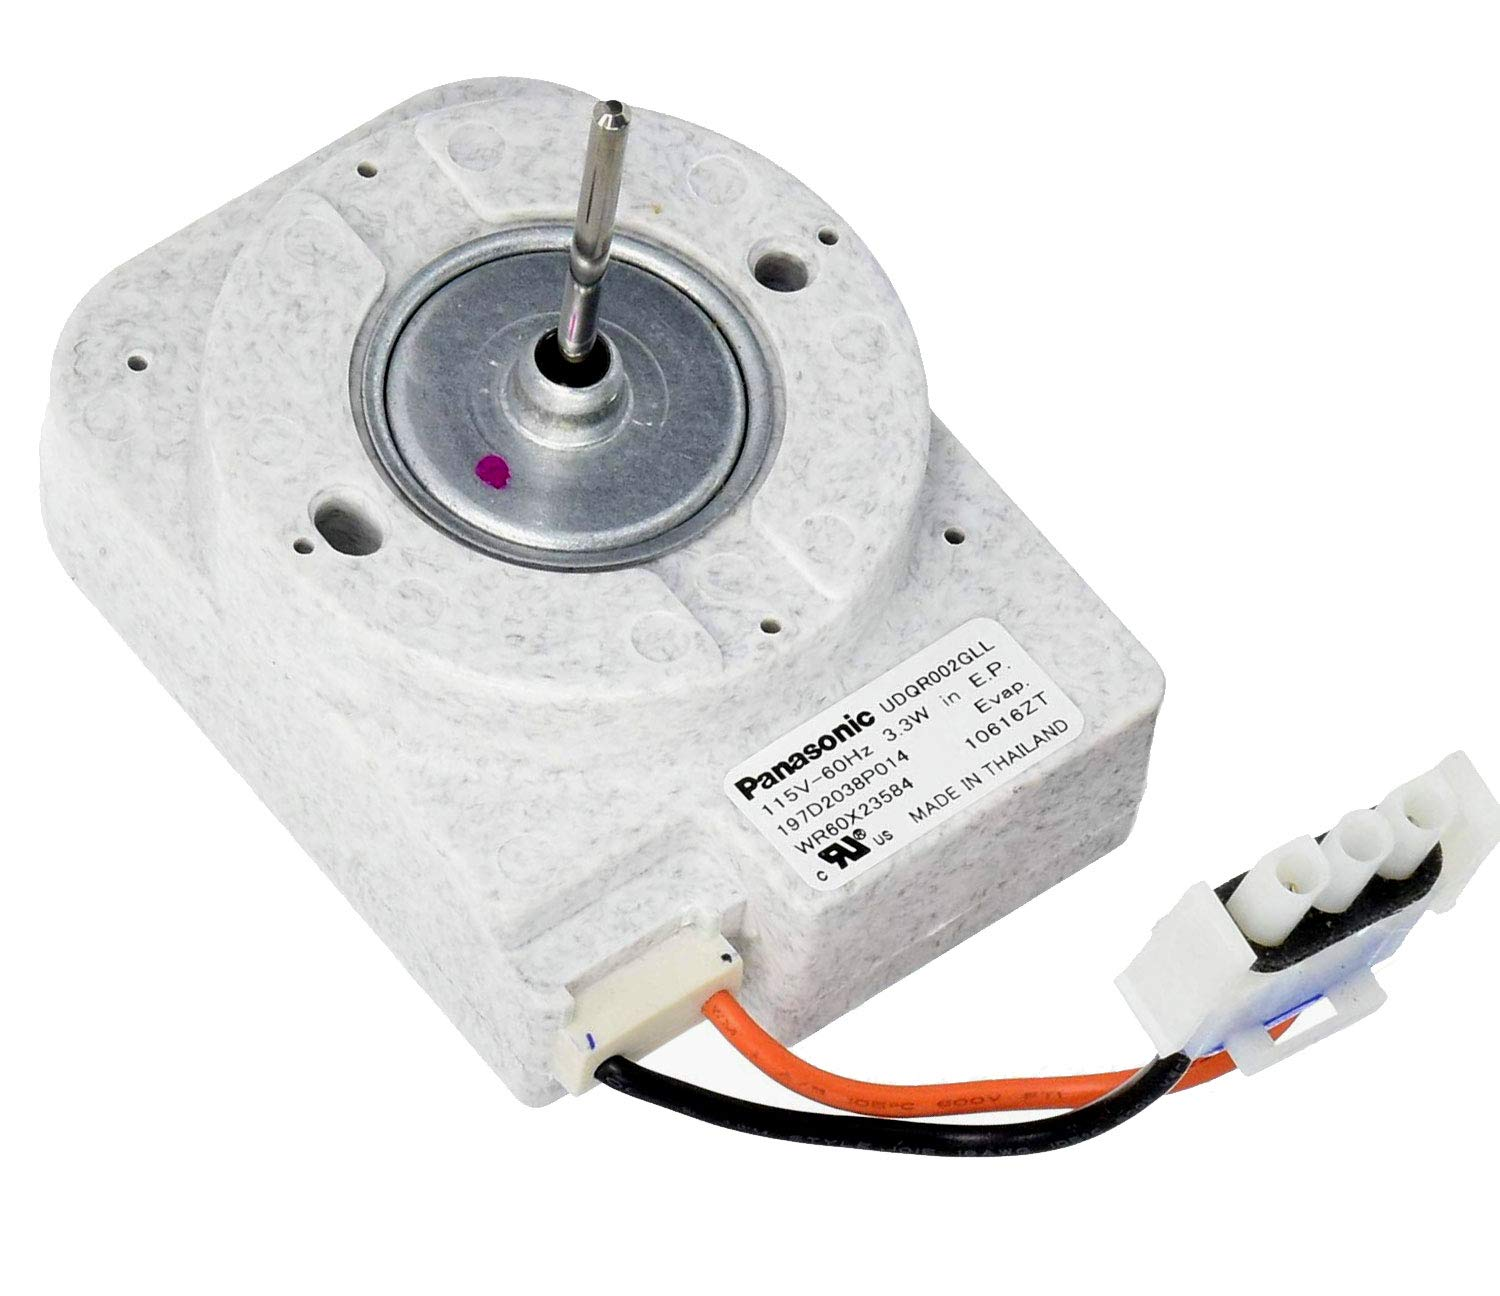 Refrigerator Evaporator Fan Motor that works with GE GTS16DTHJRWW